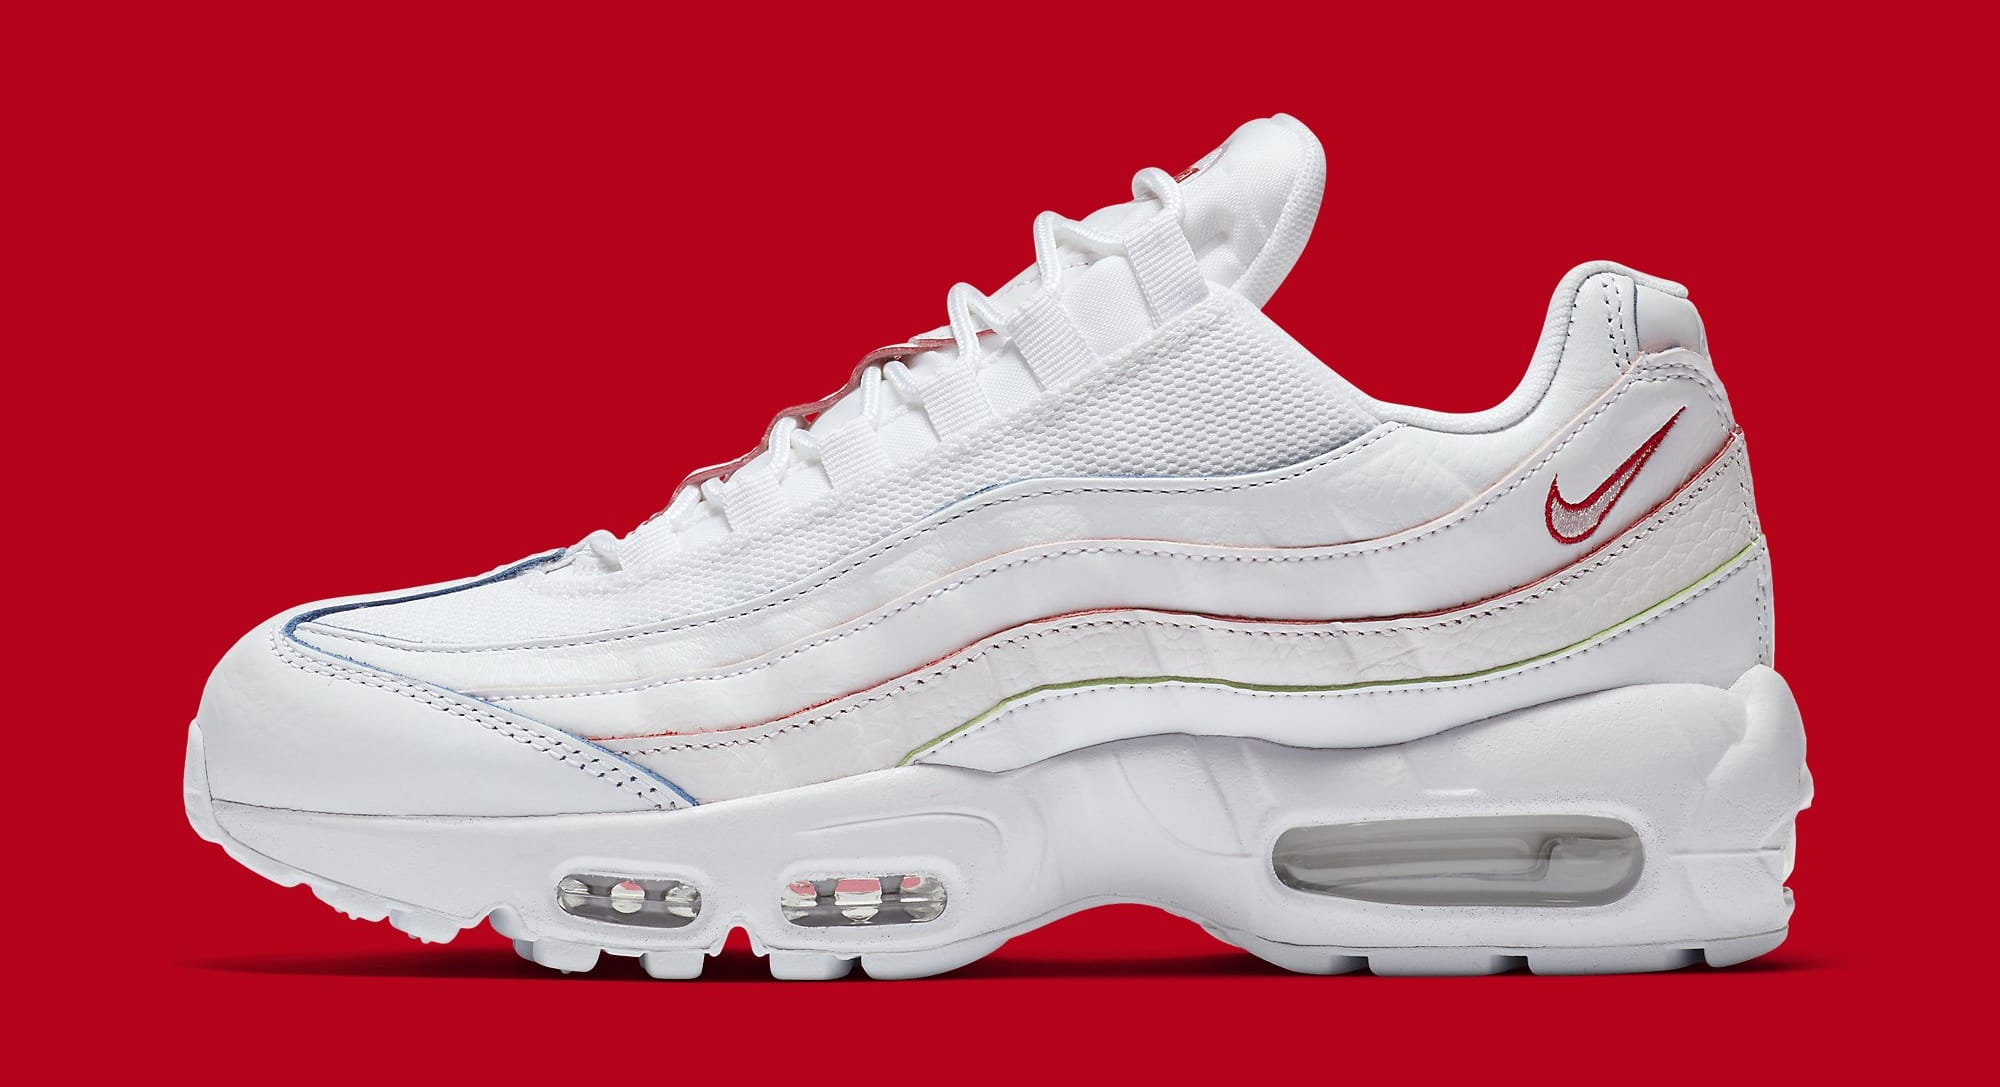 WMNS Nike Air Max 95 AQ4138-100 (Lateral)